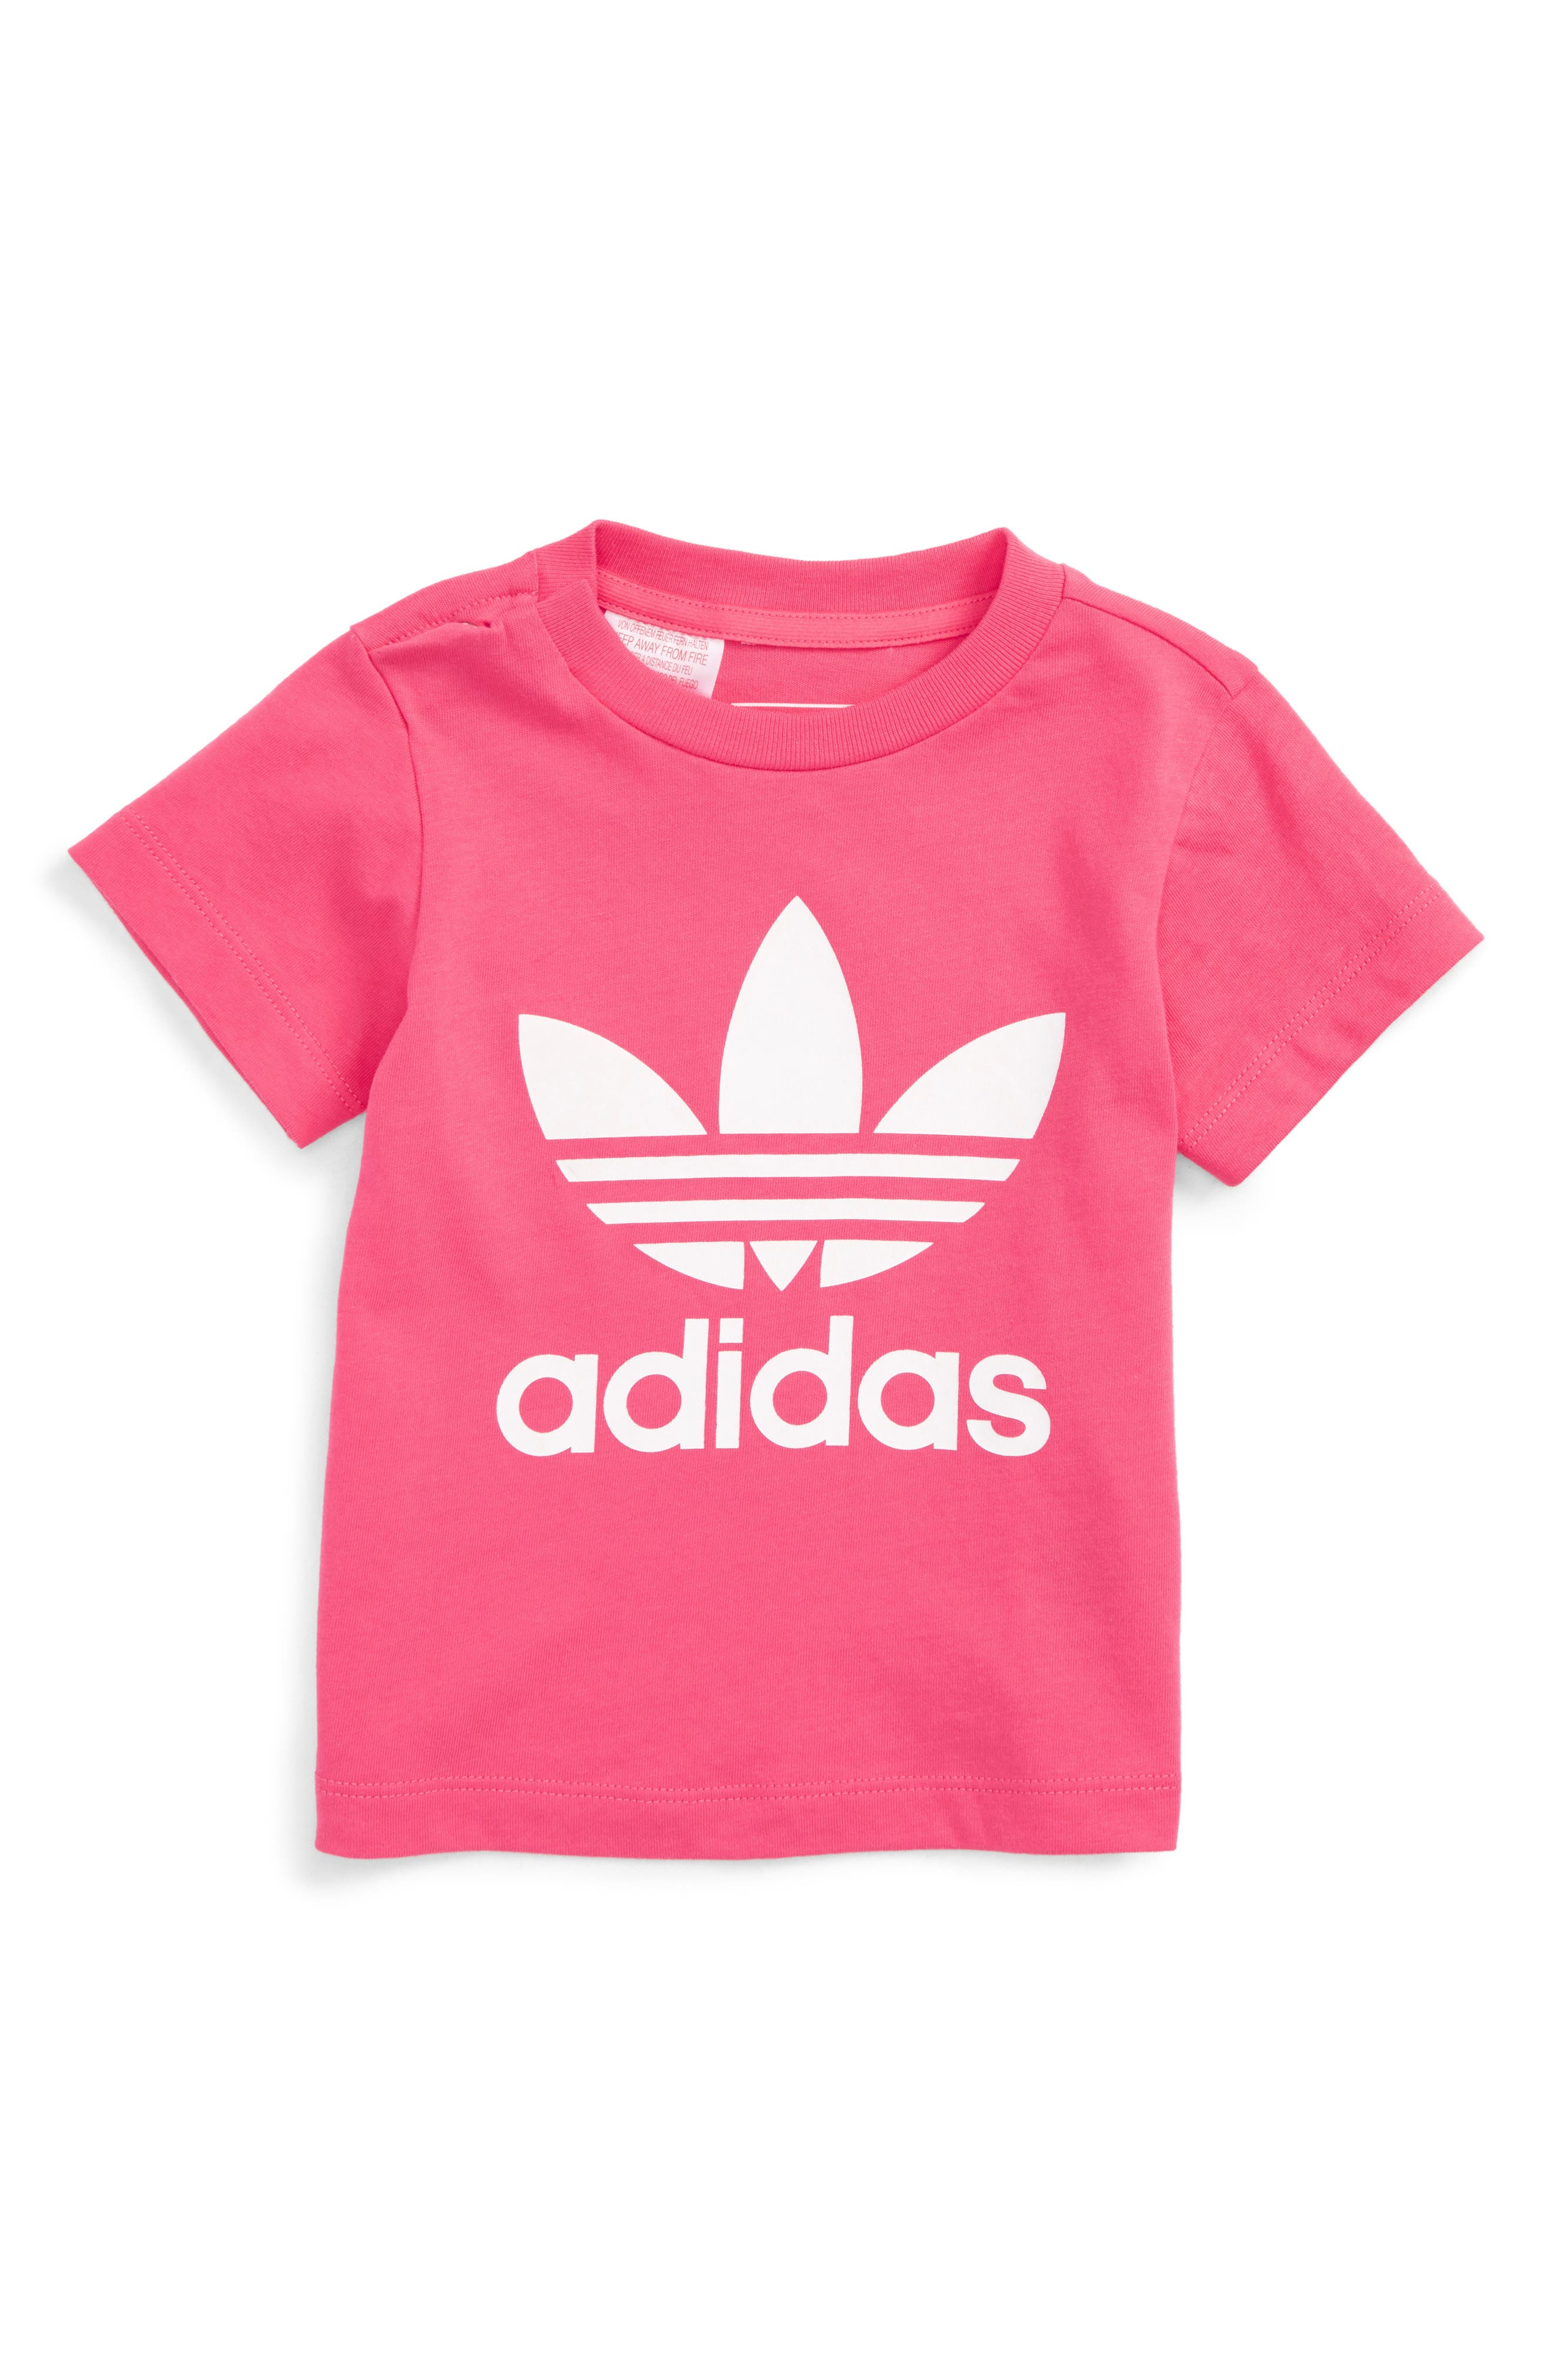 Originals Trefoil Logo Tee,                             Main thumbnail 1, color,                             Real Pink / White